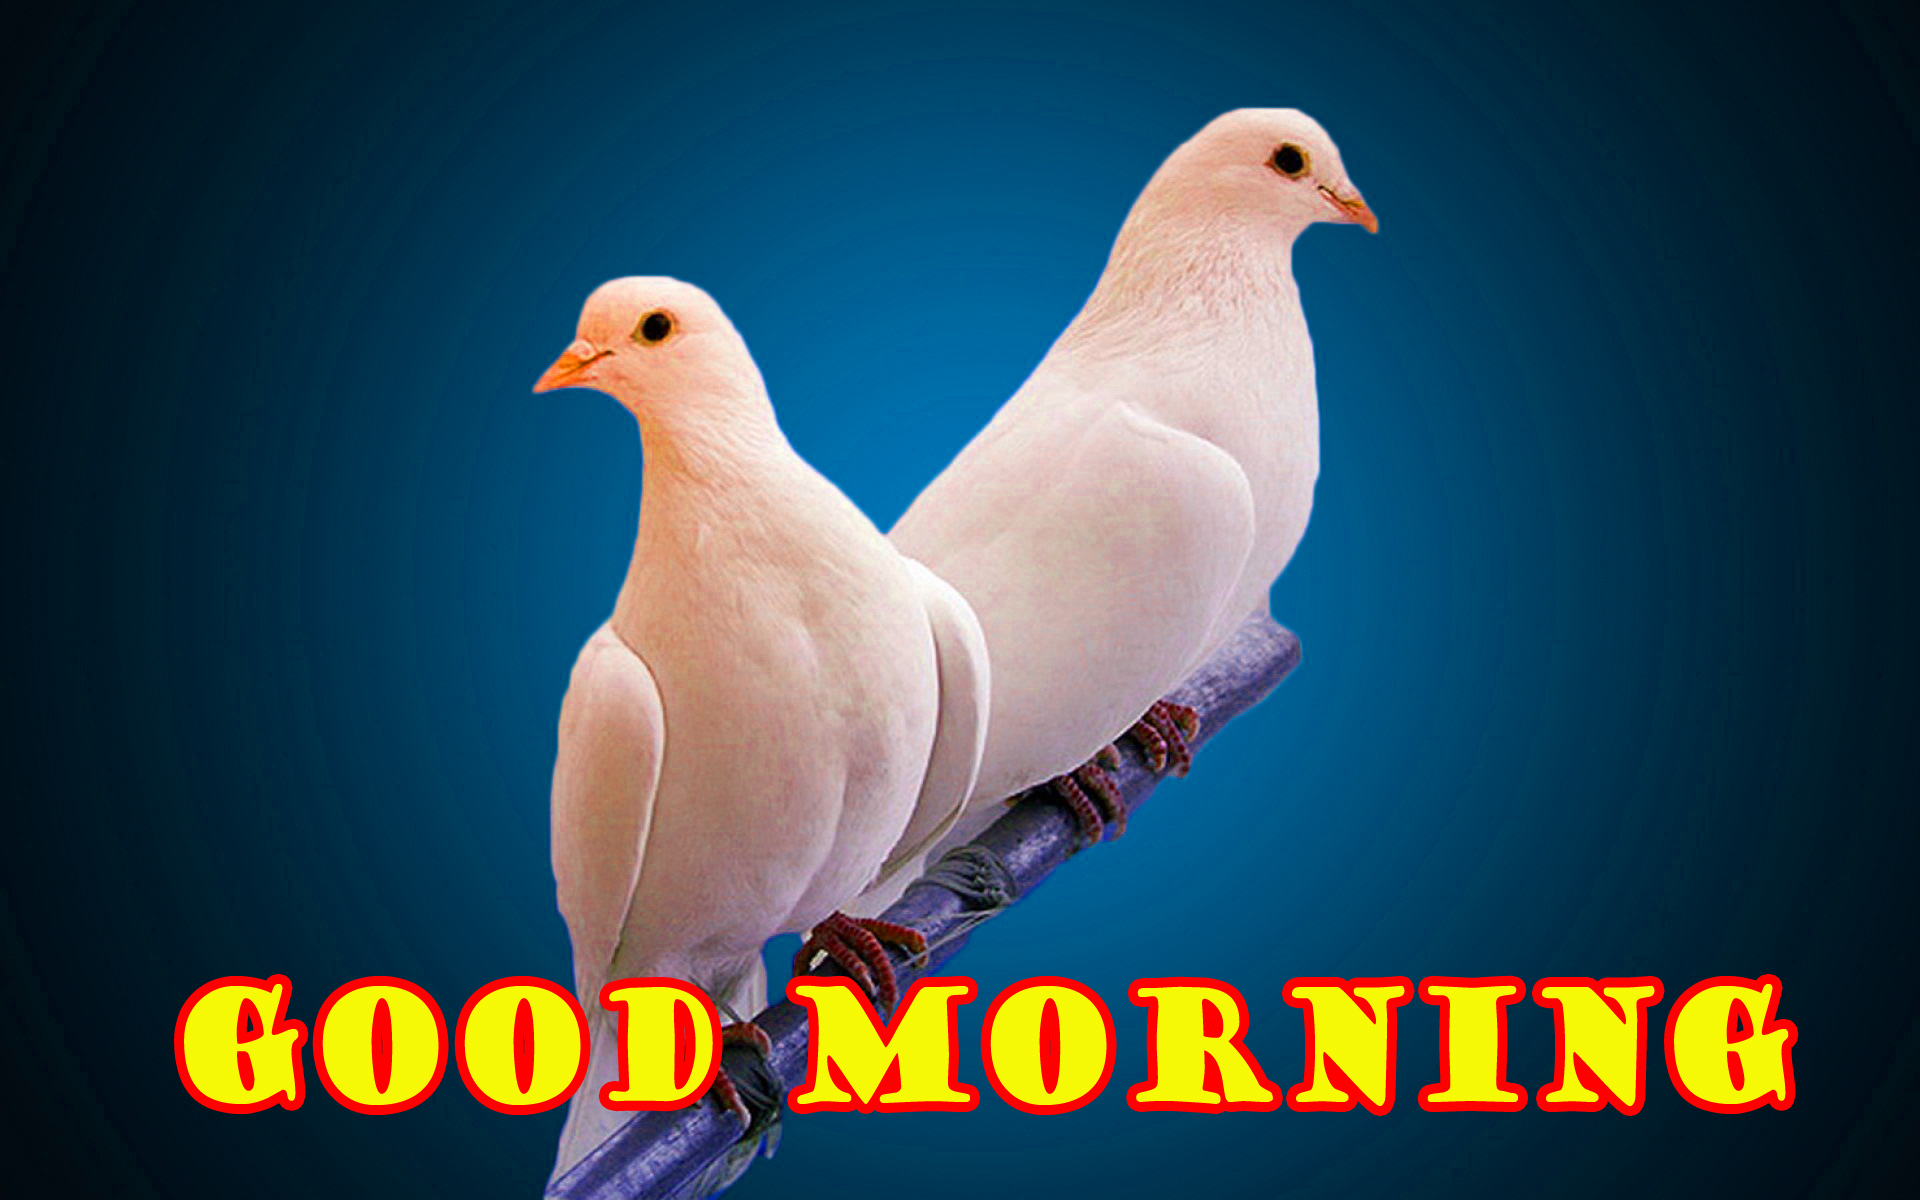 Special Wonderful Good Morning Wallpaper Photo Images Download